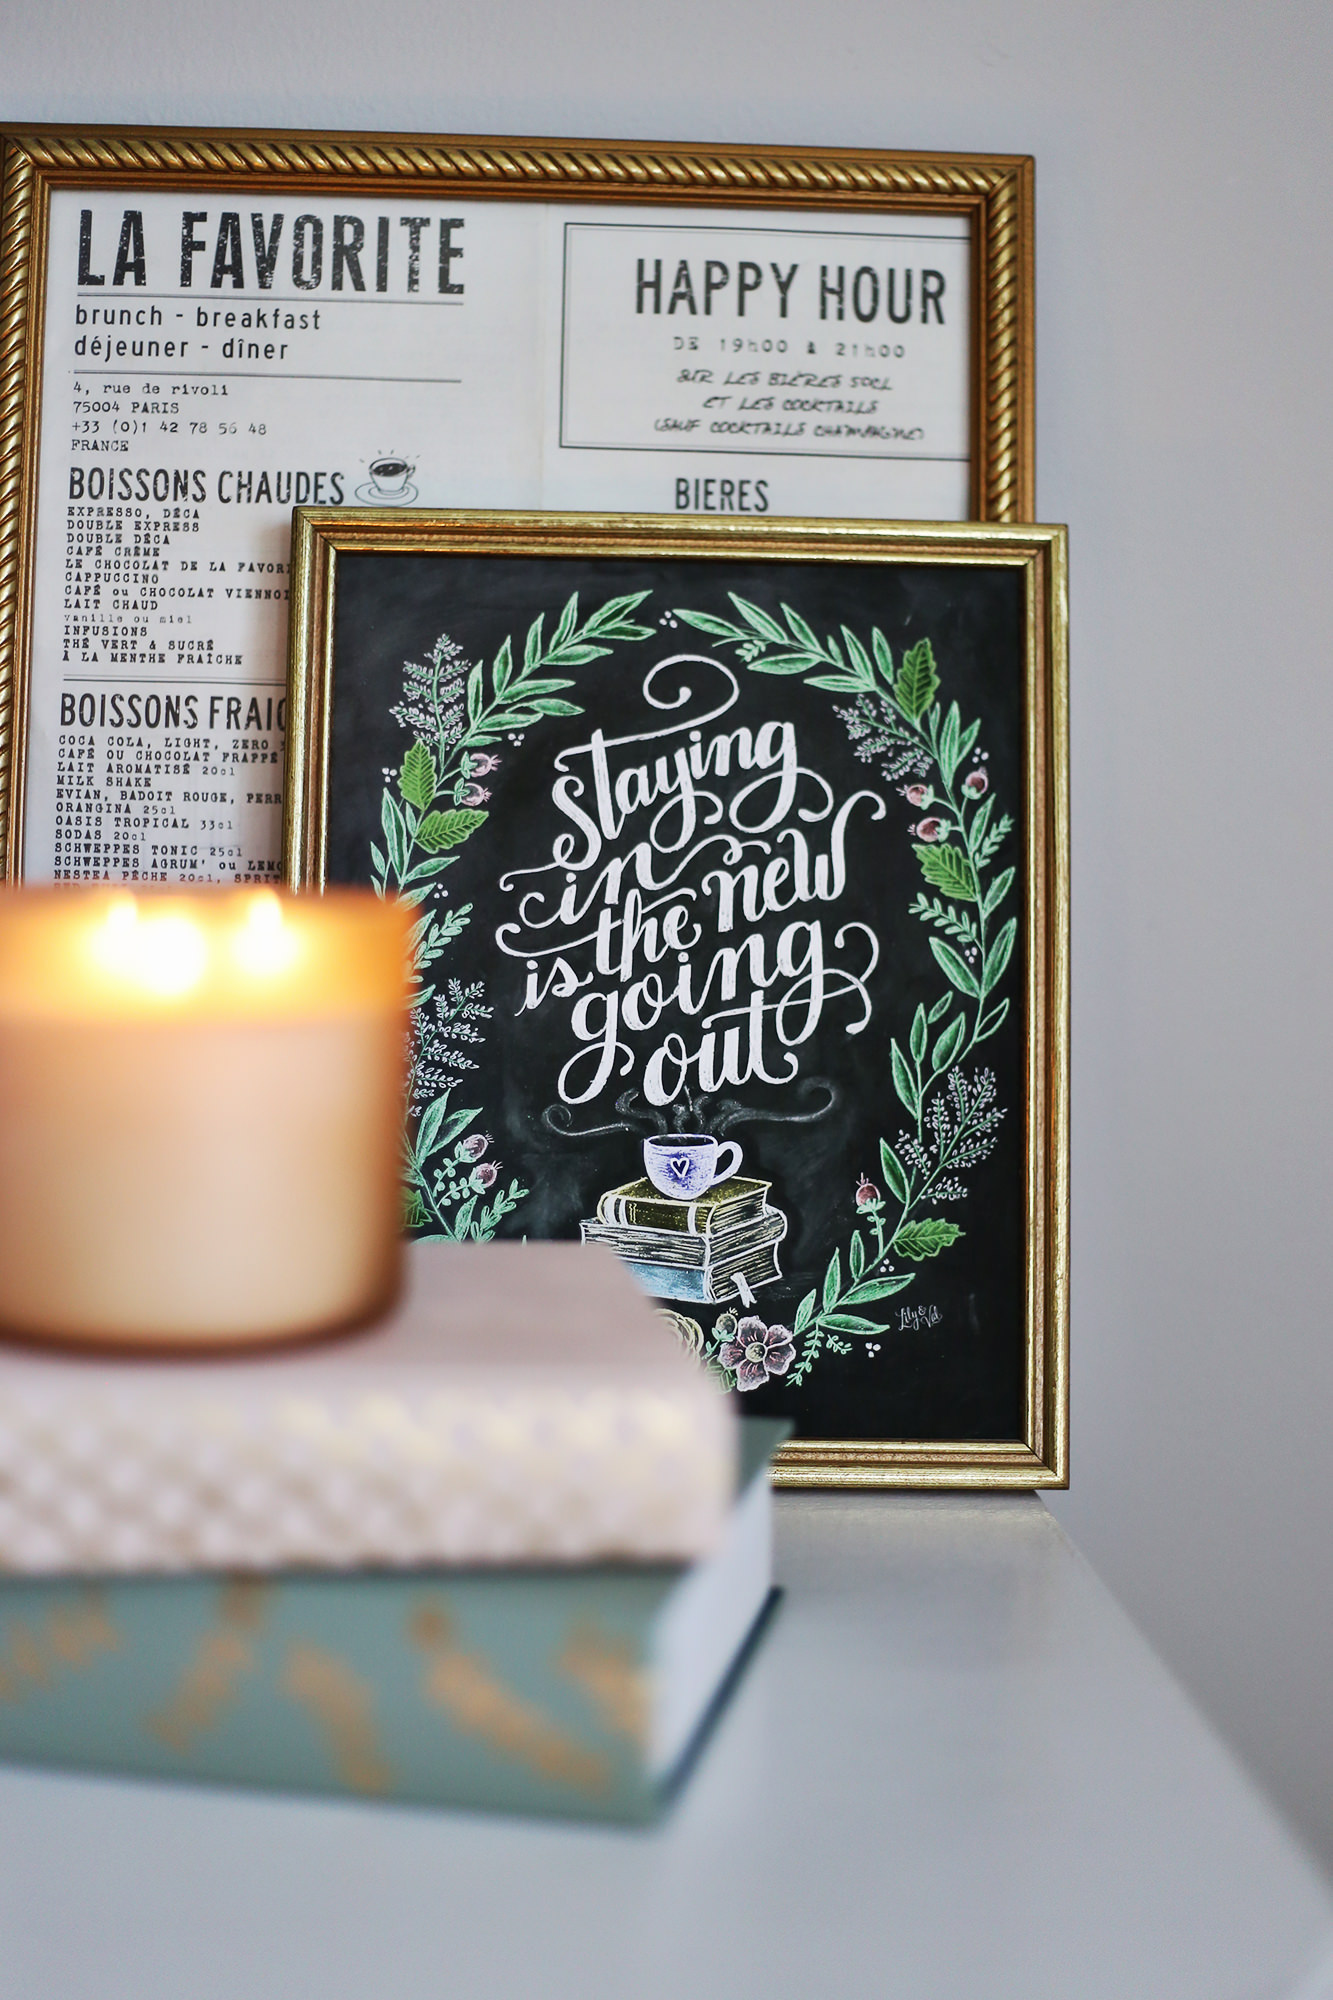 Hygge in the spring: Staying in is the new going out -chalkboard art print by Lily & Val.